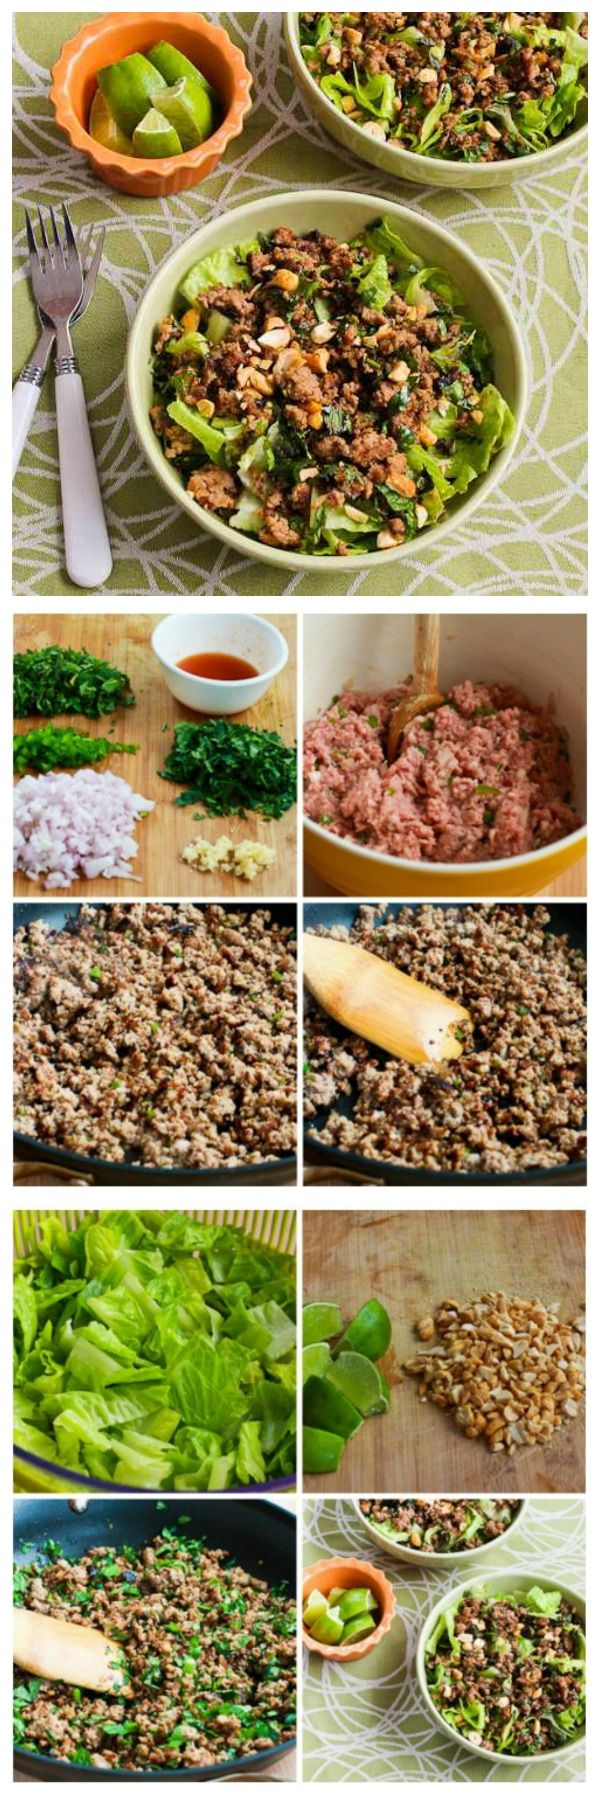 I'm crazy about this Thai-Inspired Ground Turkey Larb Salad.  Larb is a sweet-sour-spicy Thai salad that's loaded with flavor and this version is really good.  The salad has a very small amount of brown sugar but I used Stevia granulated for a lower-carb version; take your choice on that.  [from KalynsKitchen.com]